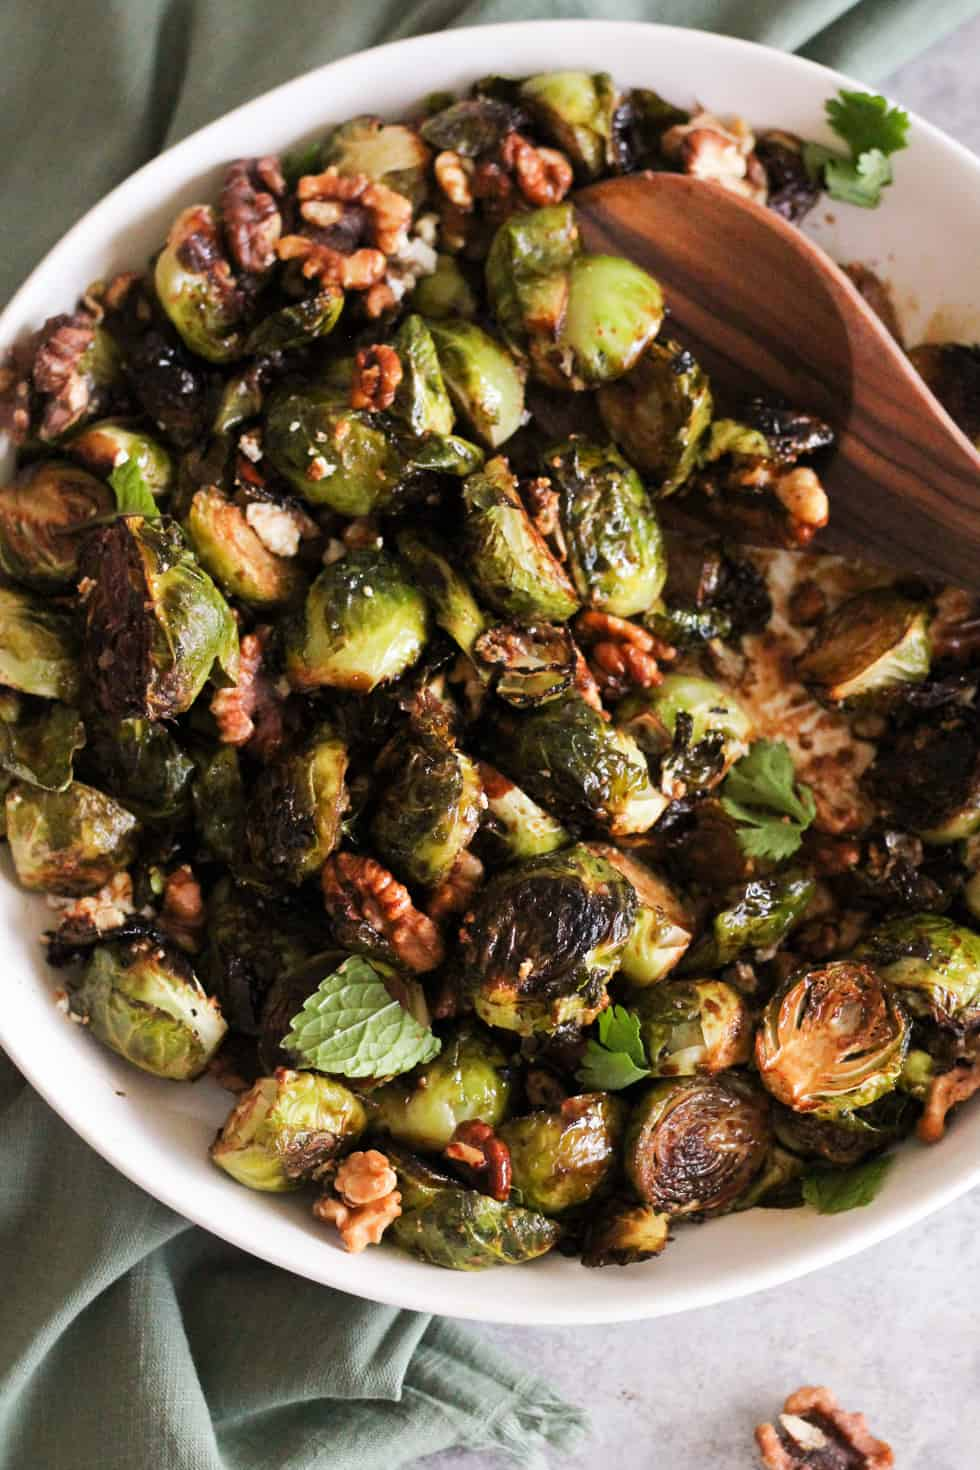 Closeup image of crispy roasted brussels sprouts in white dish with wooden spoon.